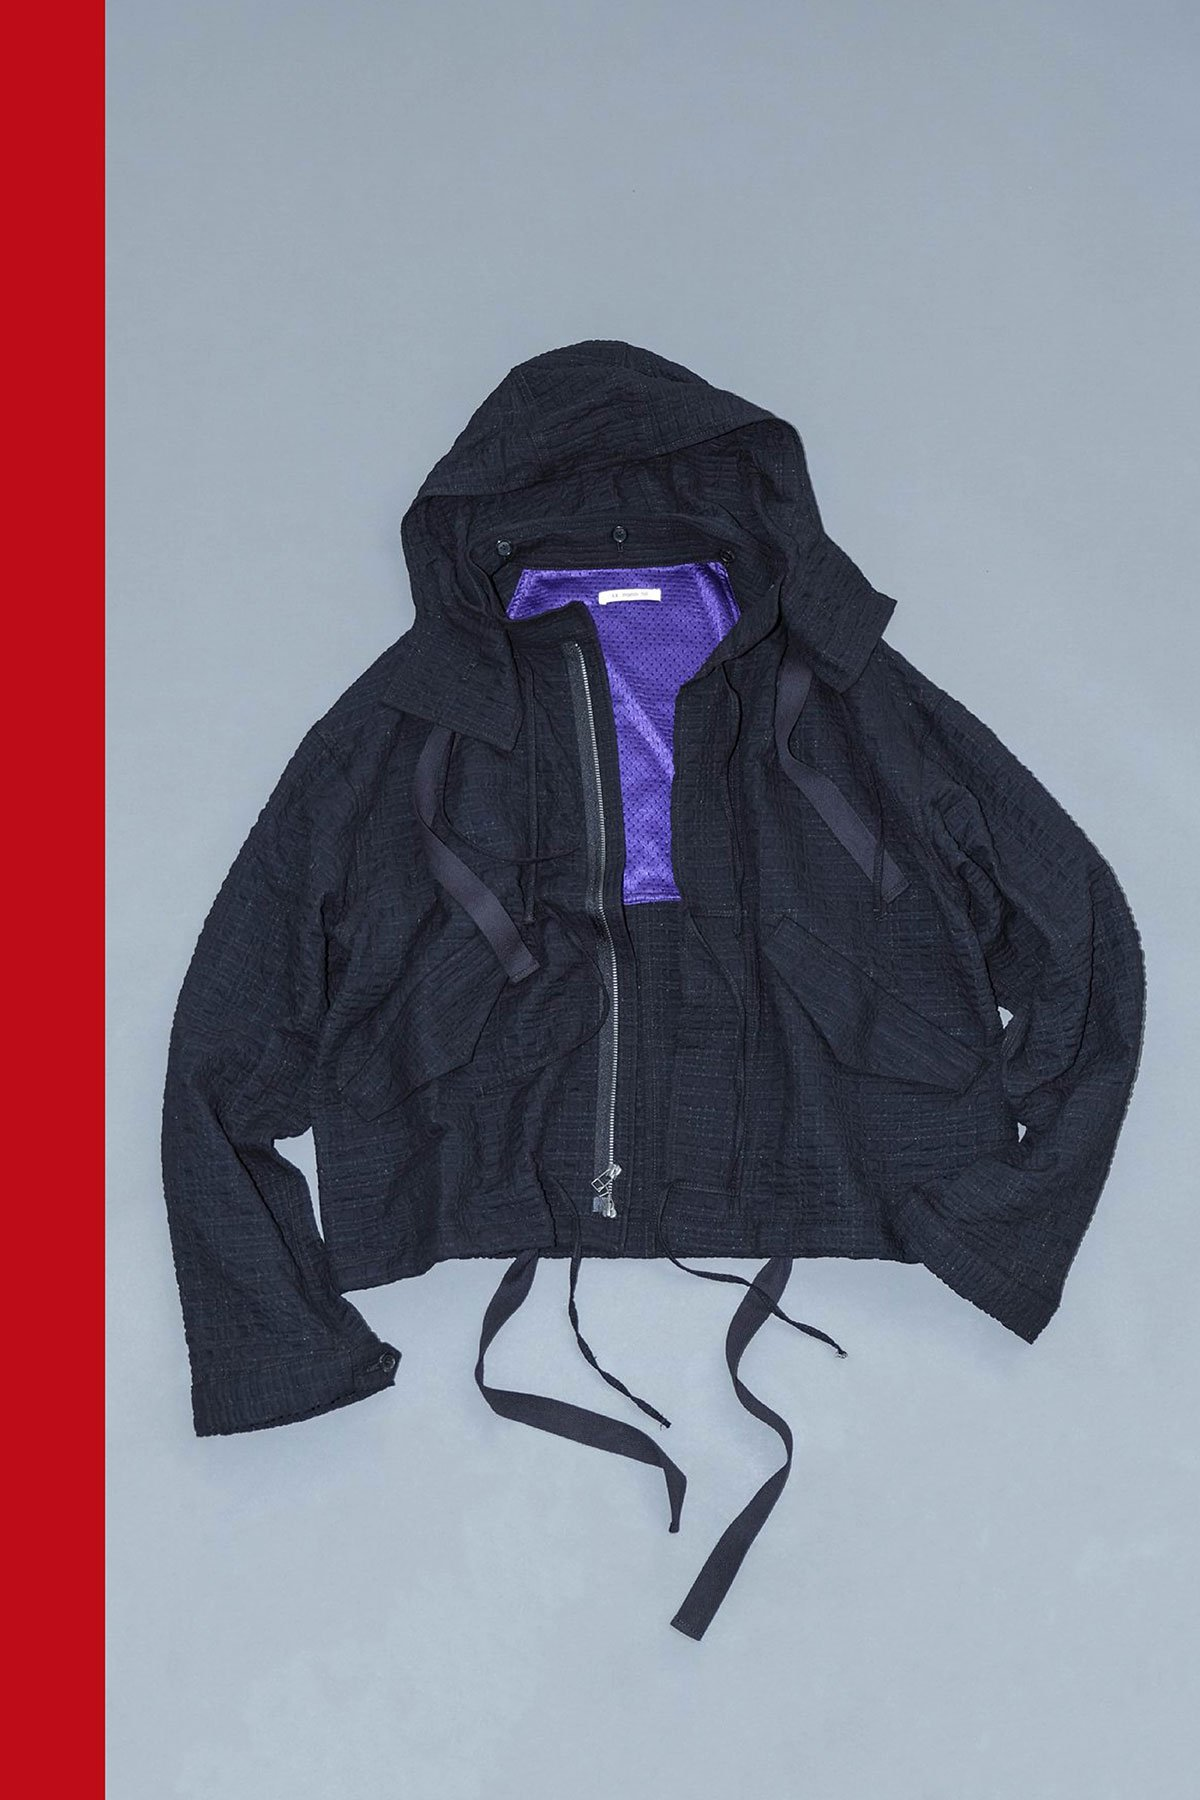 s.k. manor hill / CHOPPED FISH JACKET